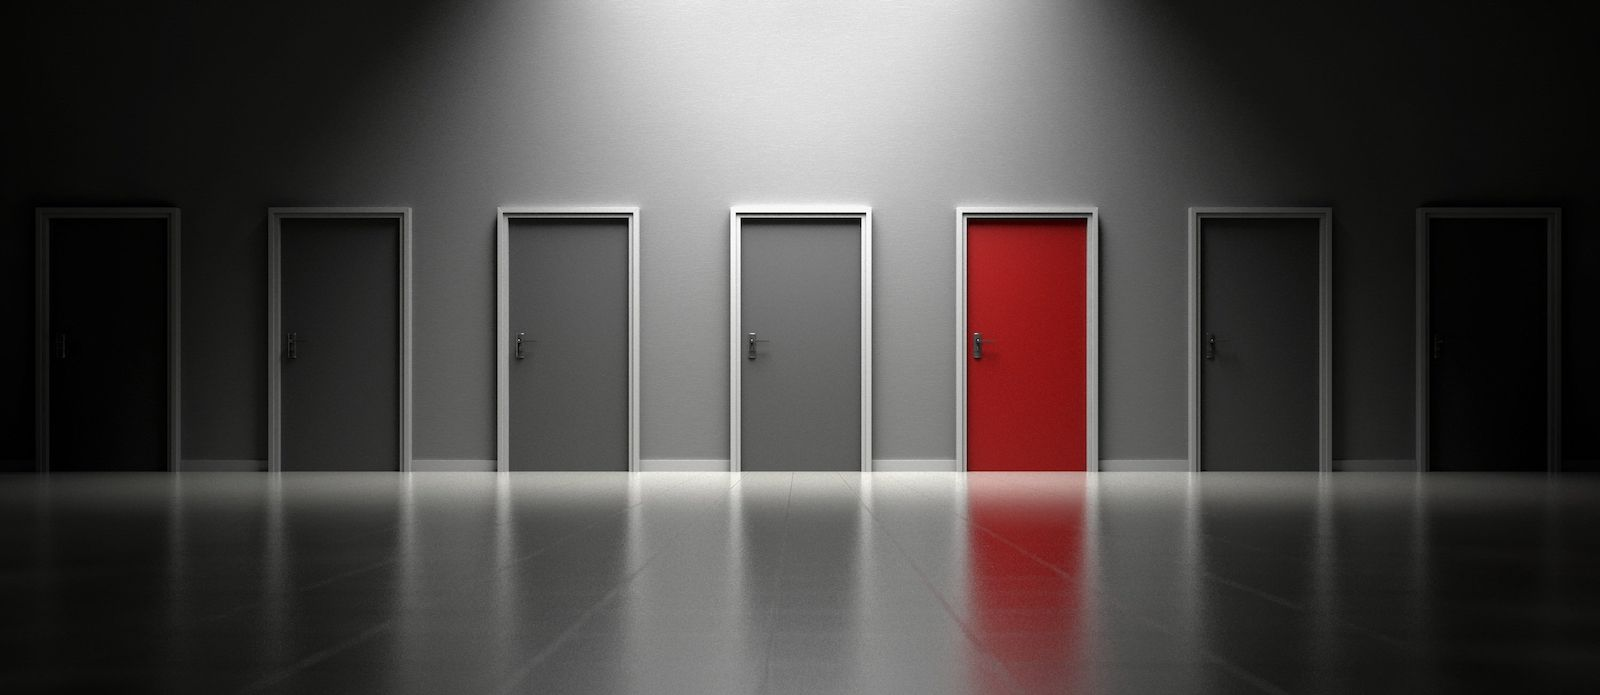 How to Choose an eLearning Design Agency California - Picture of Doors